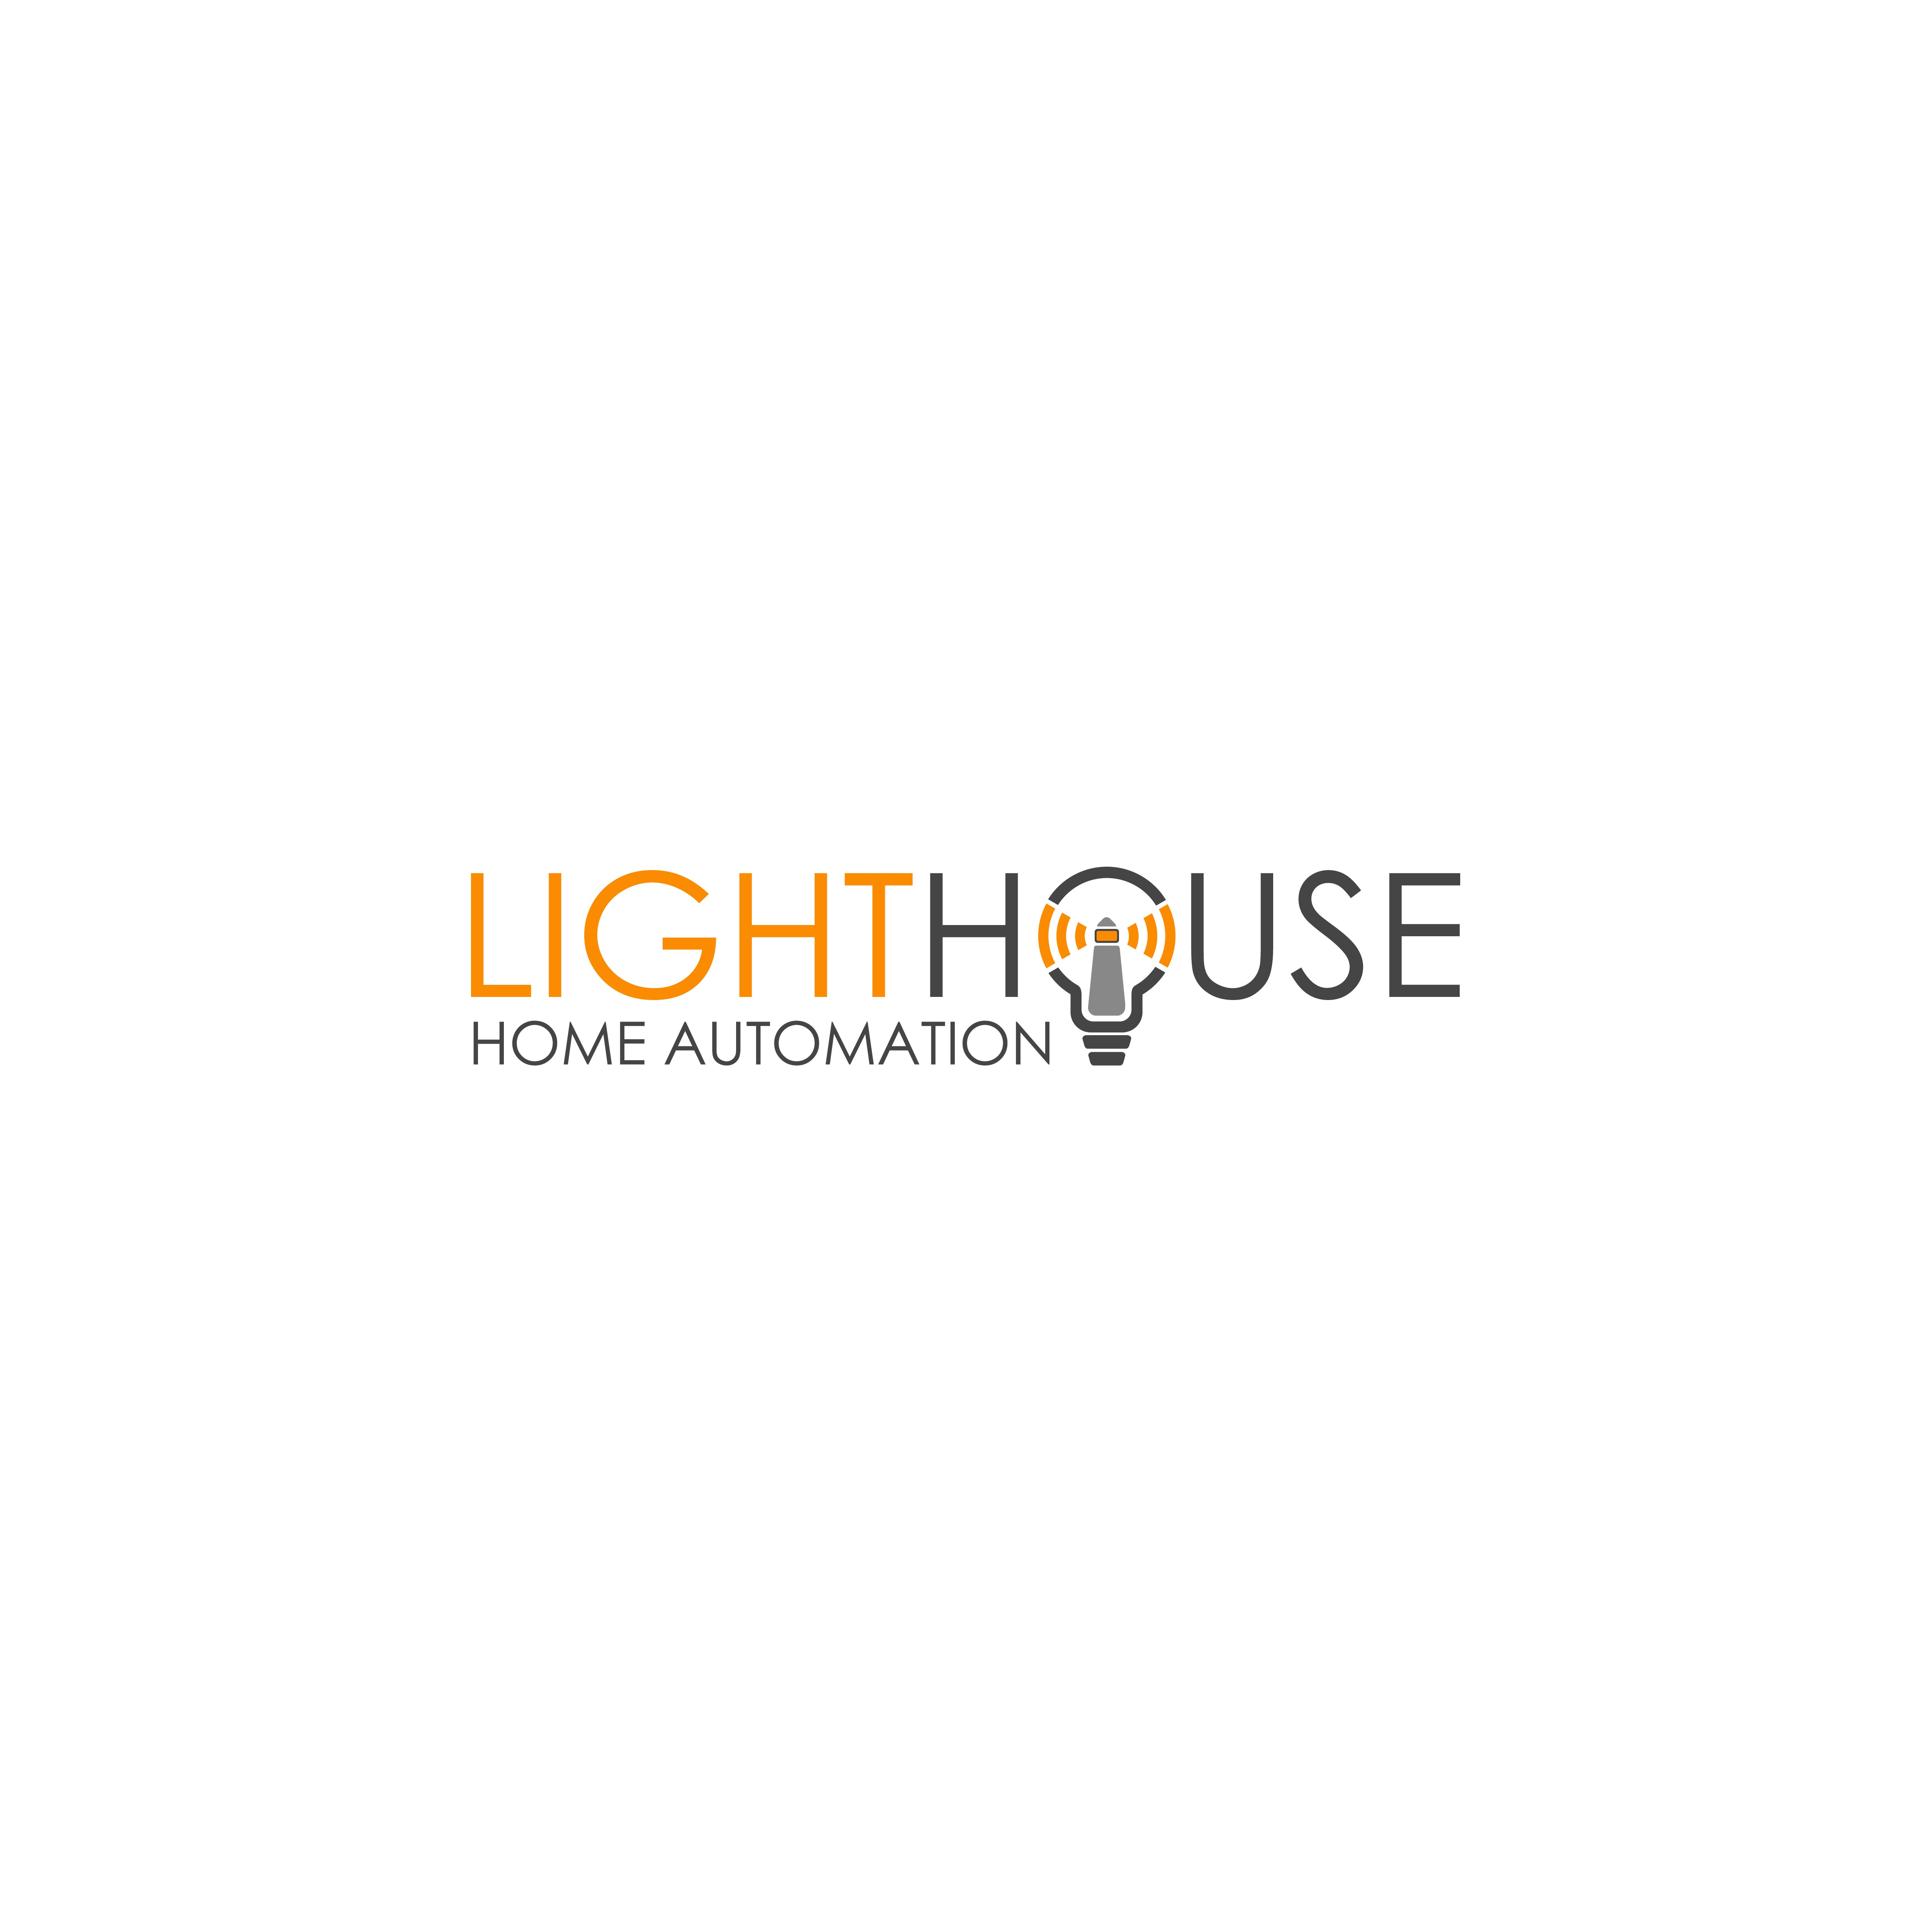 Modern, warm, friendly Logo for Home Automation Contractor!